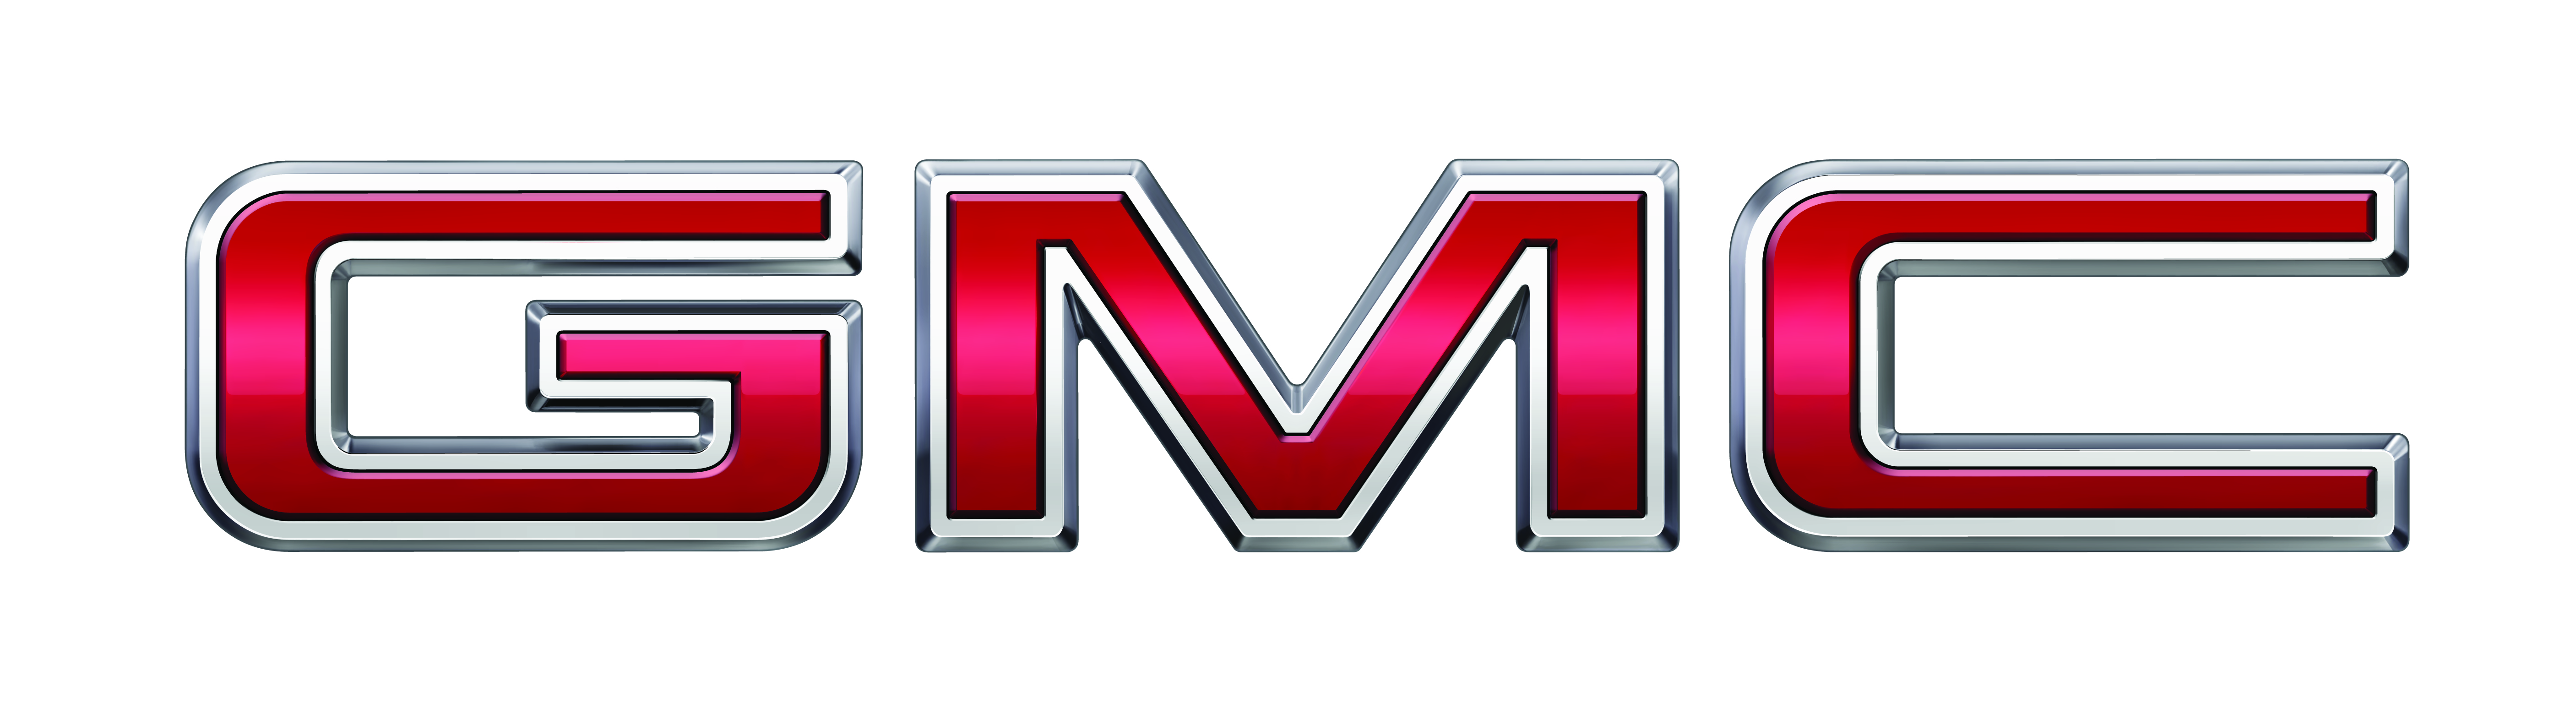 Gmc Logo Png - GM Corporate Newsroom - United States - Images